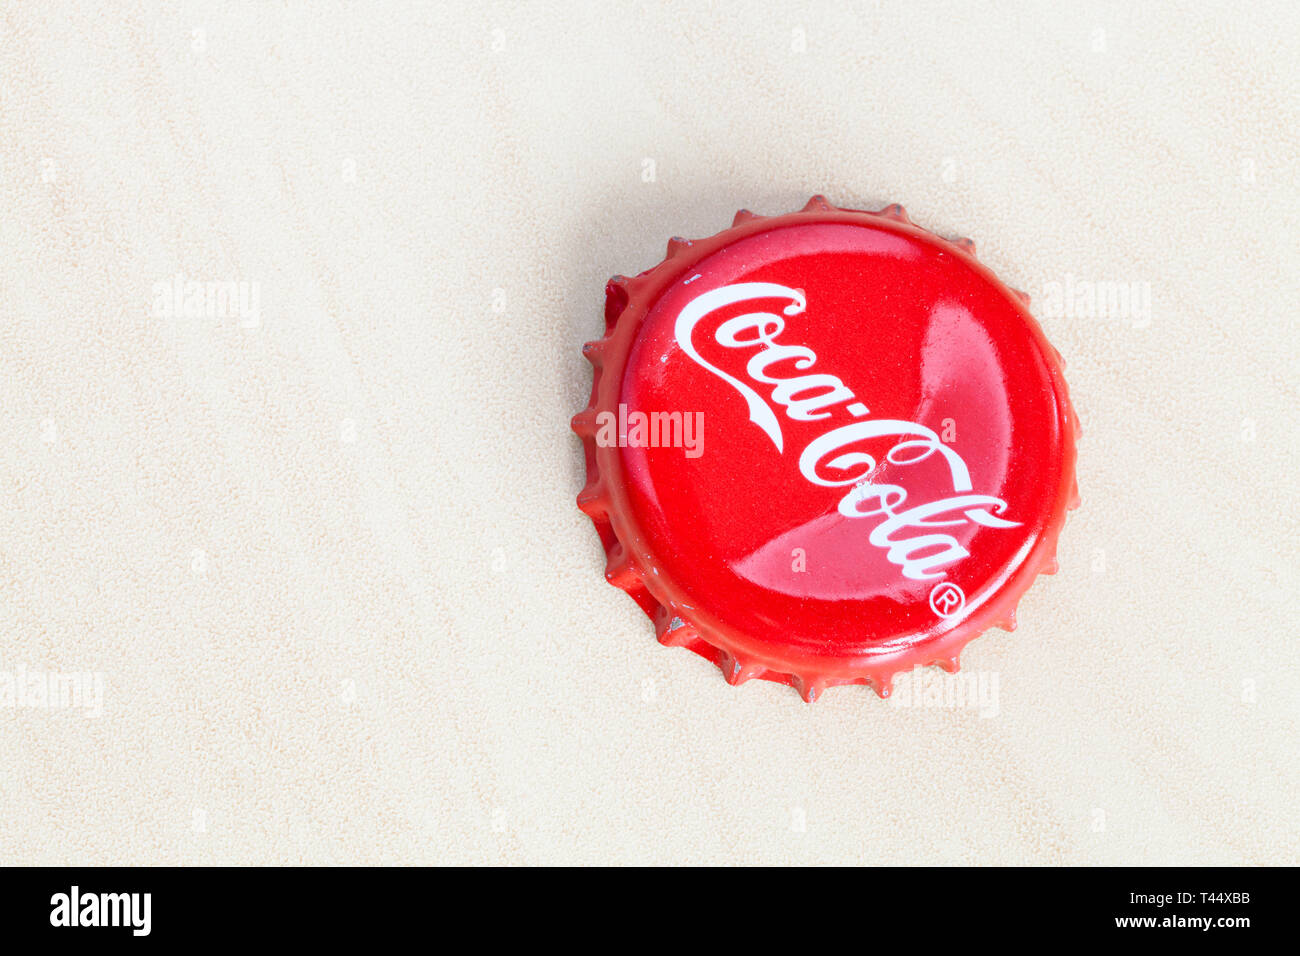 MOSCOW, RUSSIA - APRIL 4, 2019: old crown cork bottle cap from Coca-Cola beverage on wooden board with copyspace. Coca-Cola (Coke) is carbonated soft  - Stock Image